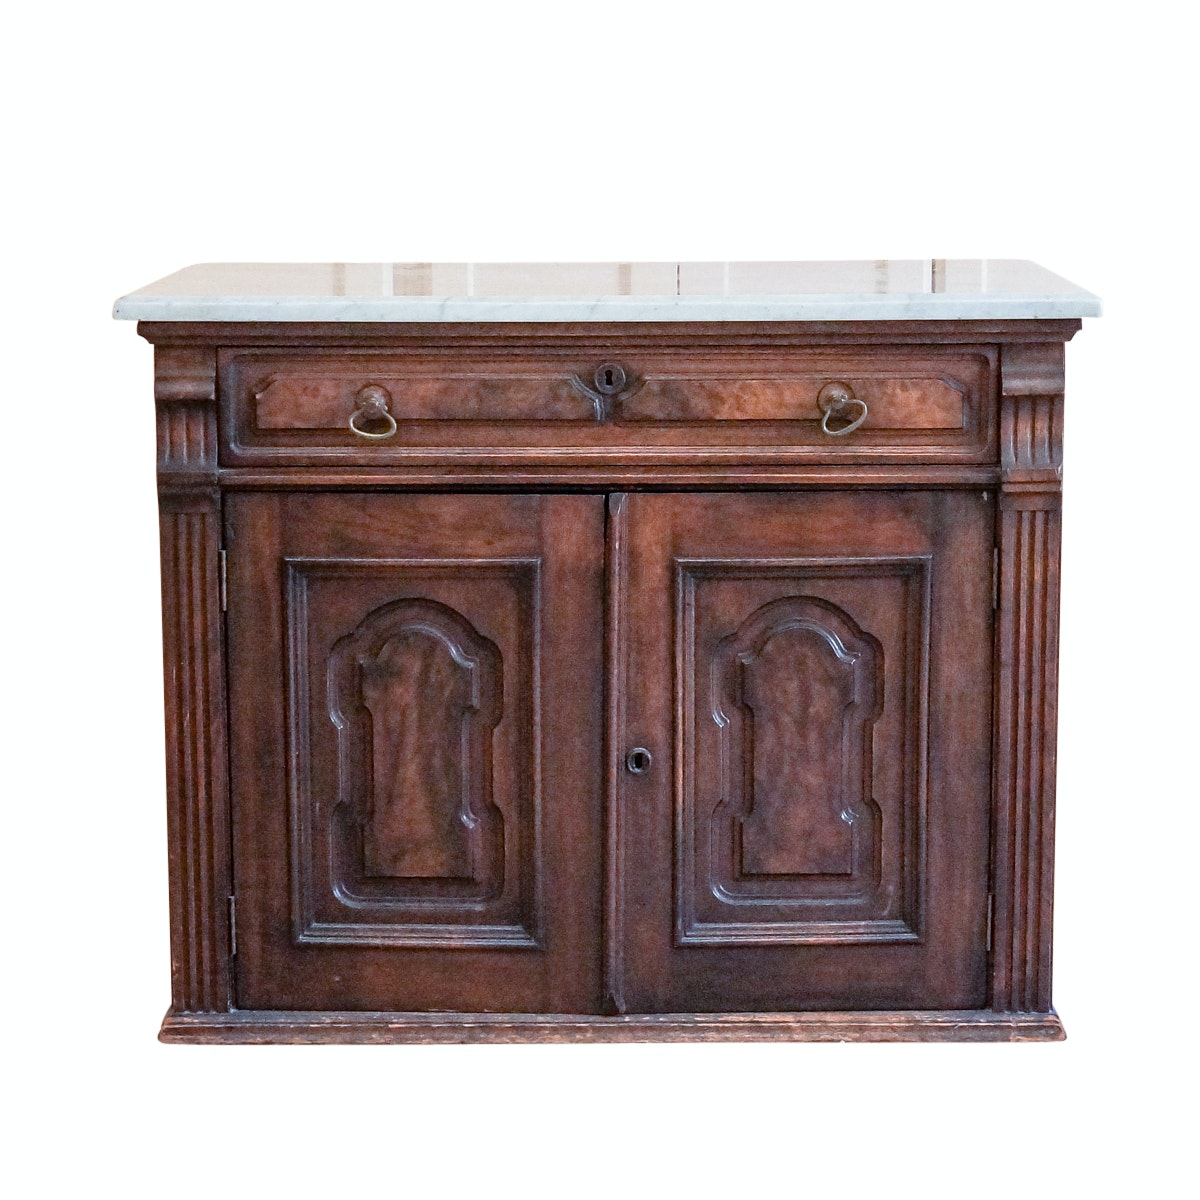 Antique Victorian Marble Top Wash Stand